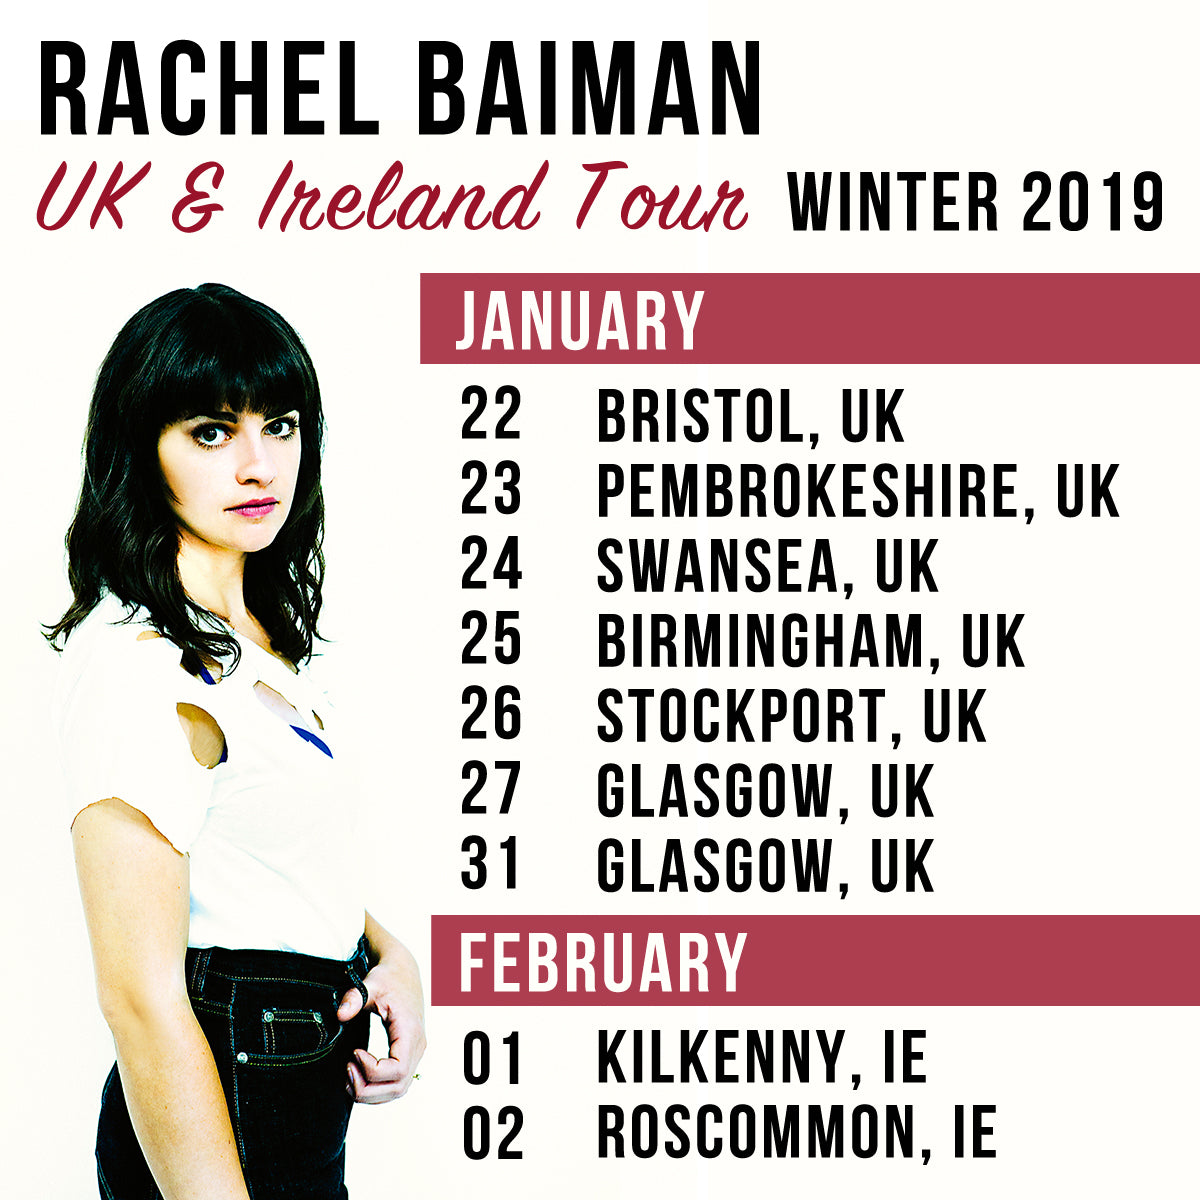 Rachel Baiman Returns to UK & Ireland This Winter